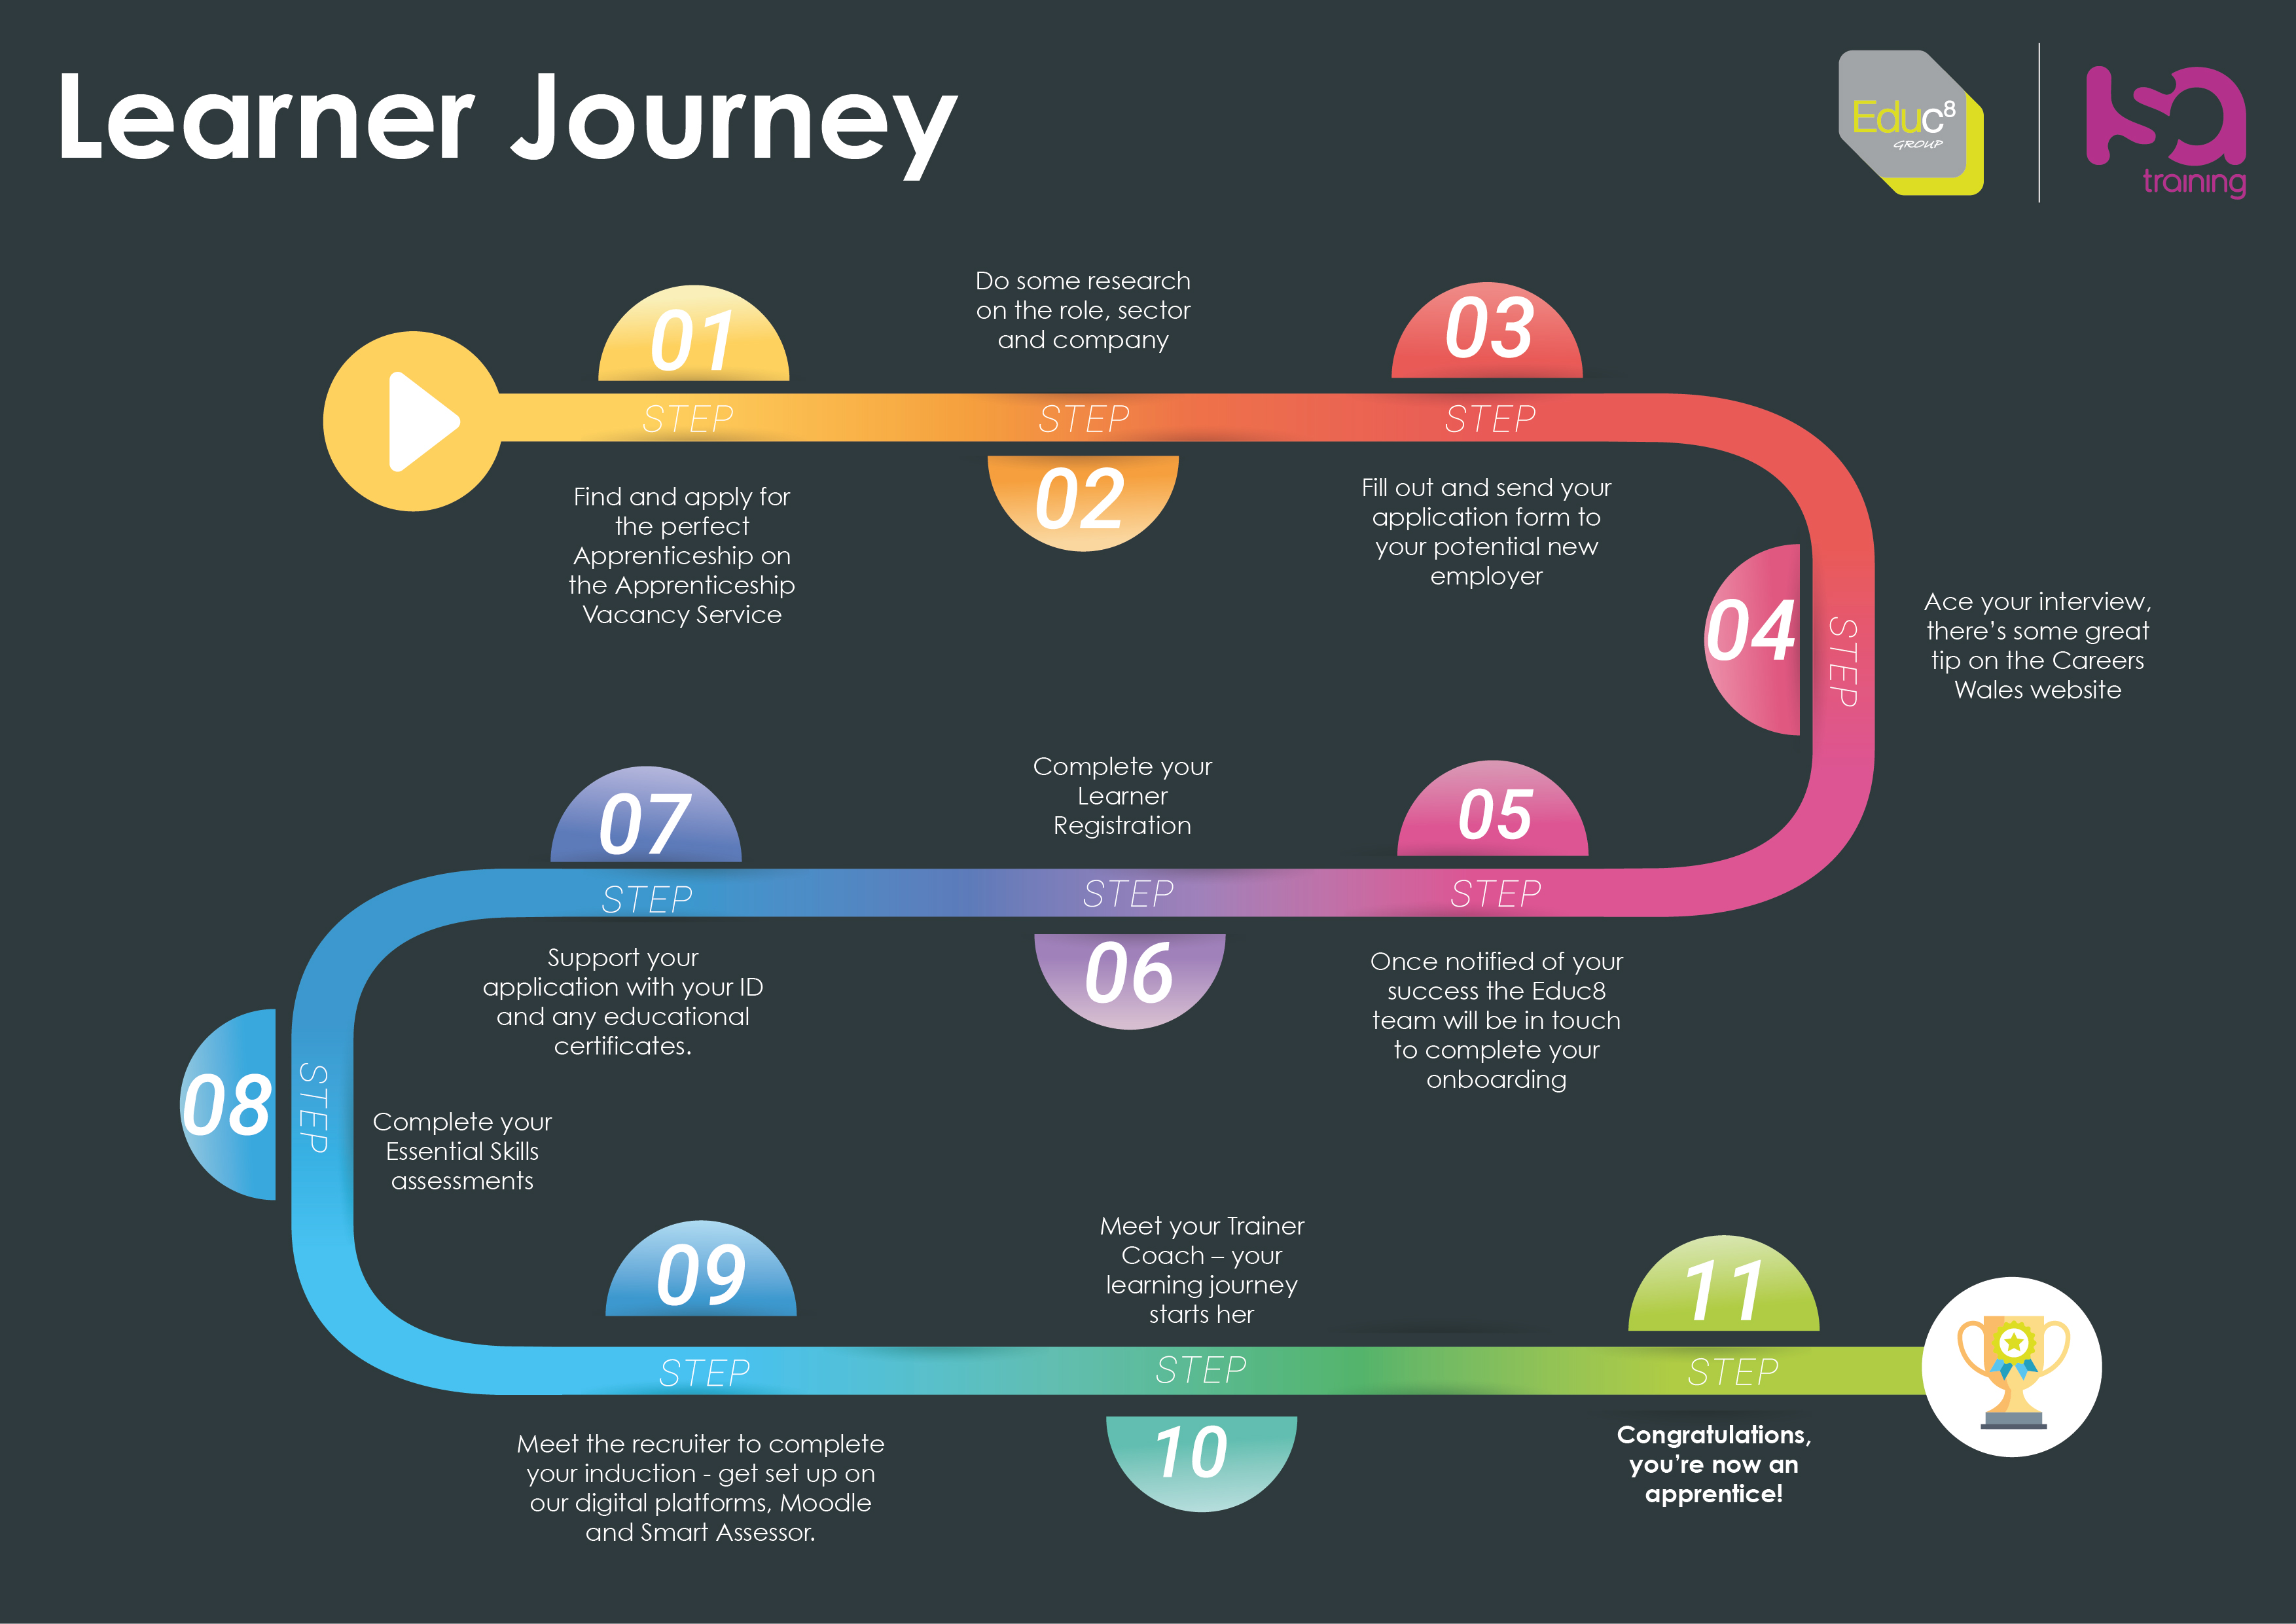 An illustration showing the different steps a learner takes when completing an apprenticeship